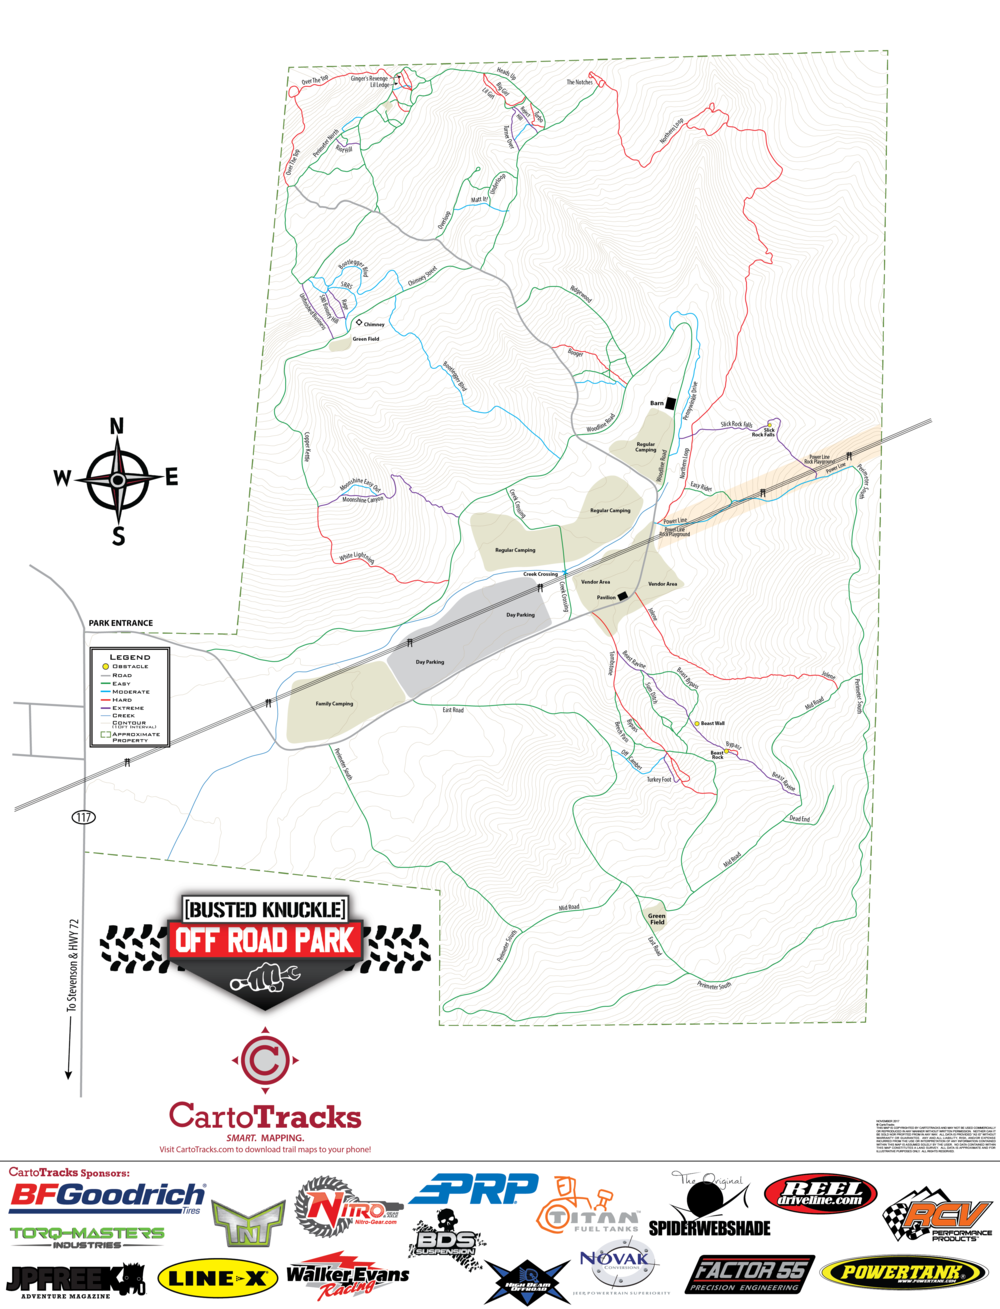 Smart Digital Maps Available from Cartotracks.com